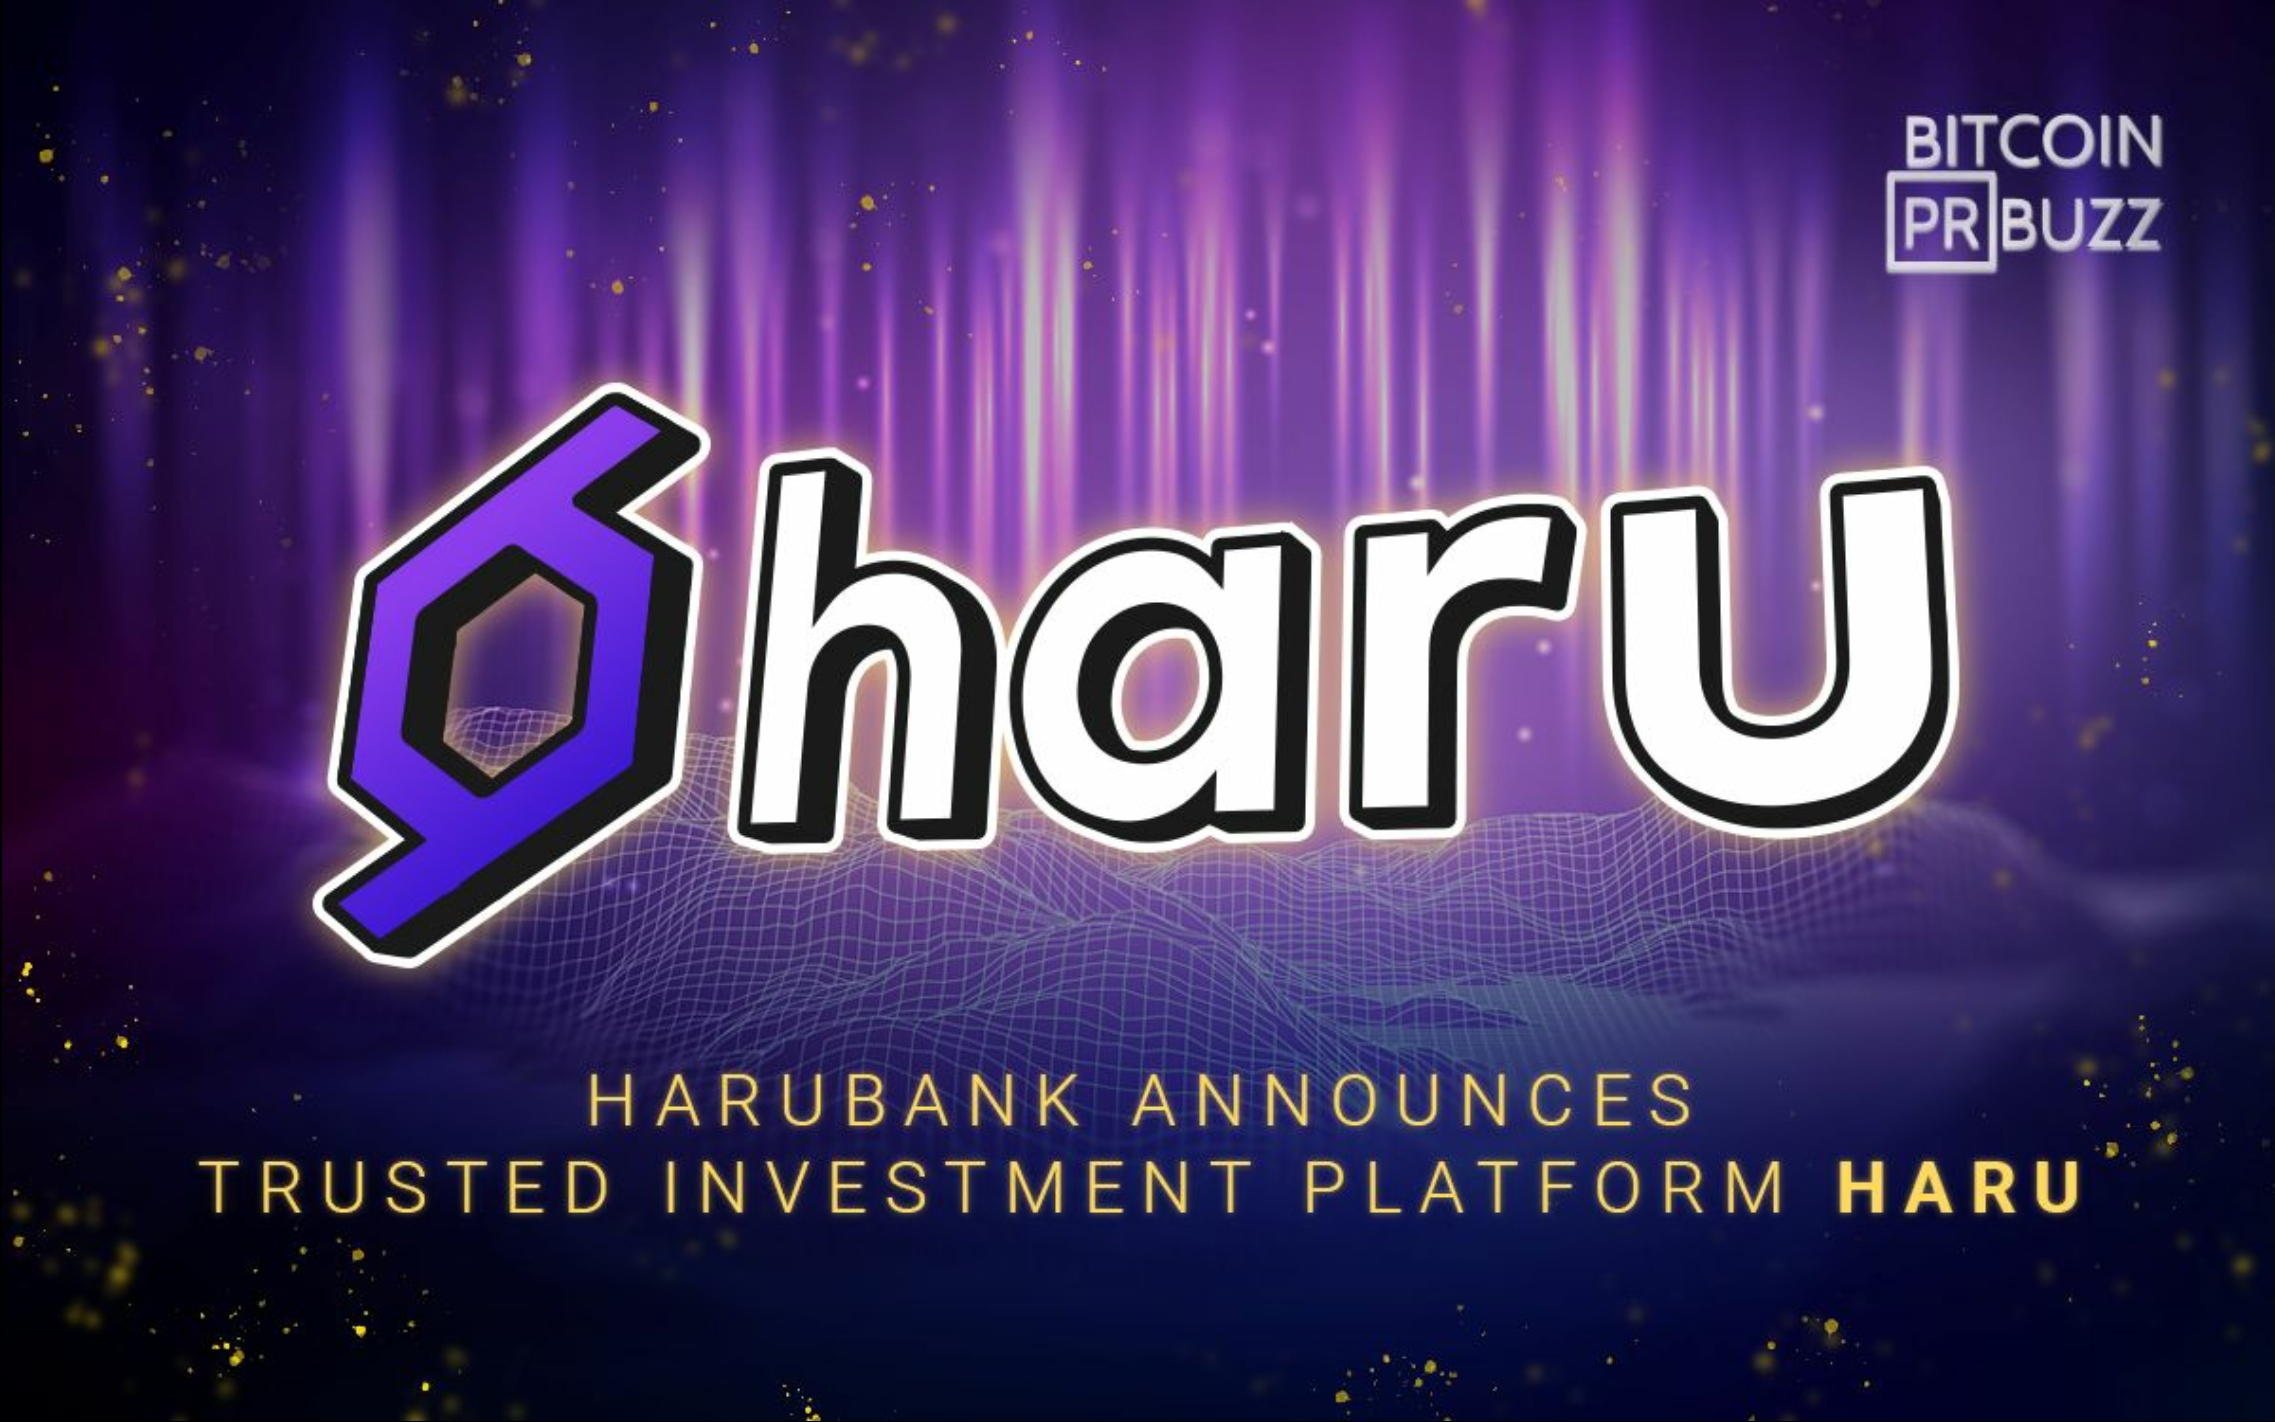 HaruBank Announces Trusted Investment Platform Haru